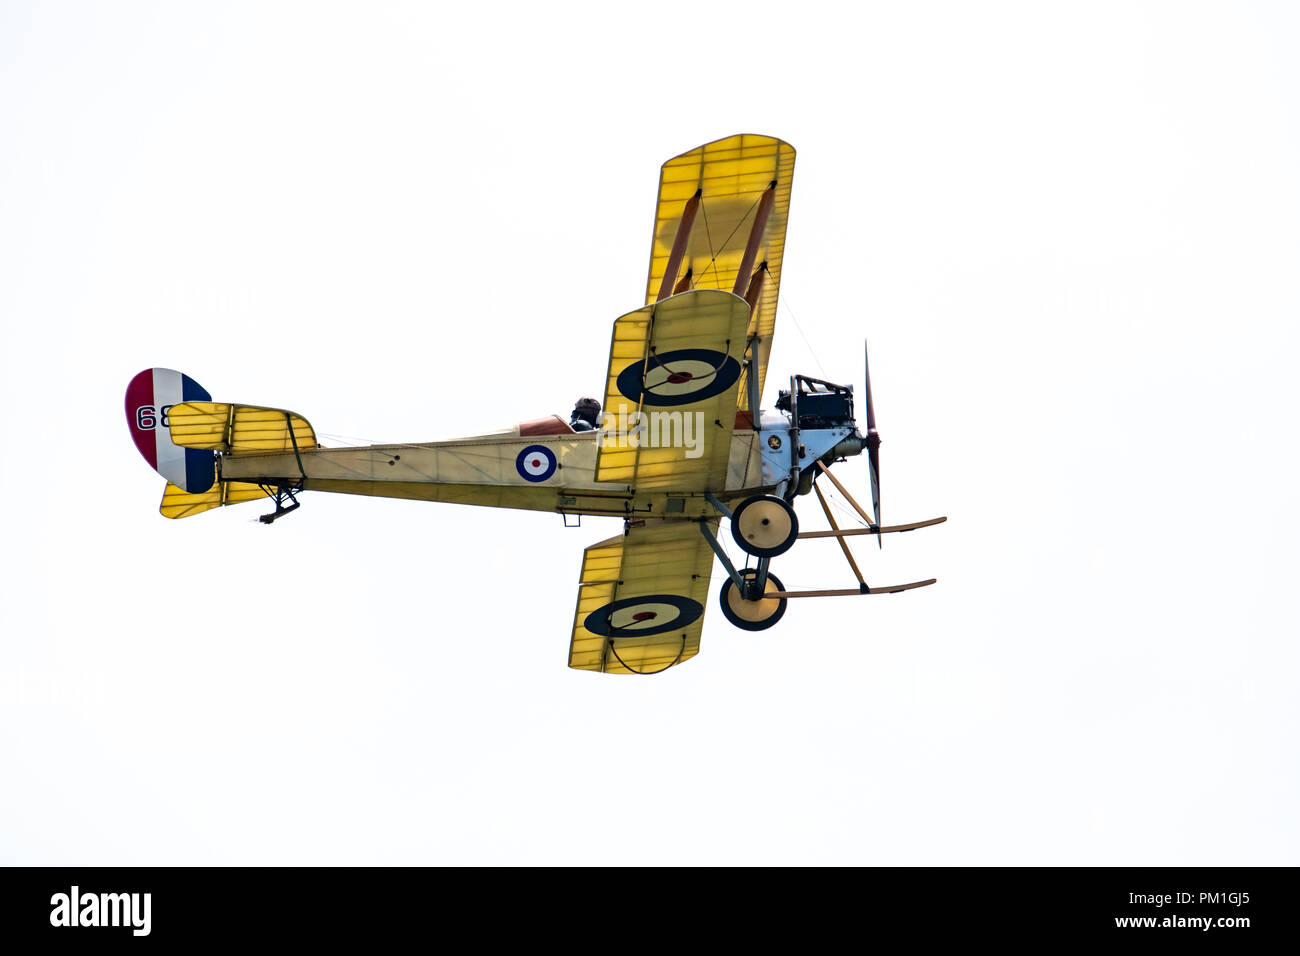 TELFORD, UK, JUNE 10, 2018 - A photograph documenting a replica Royal Aircraft Factory BE2c WWI Scout and fighter aircraft at RAF Cosford as part of t - Stock Image